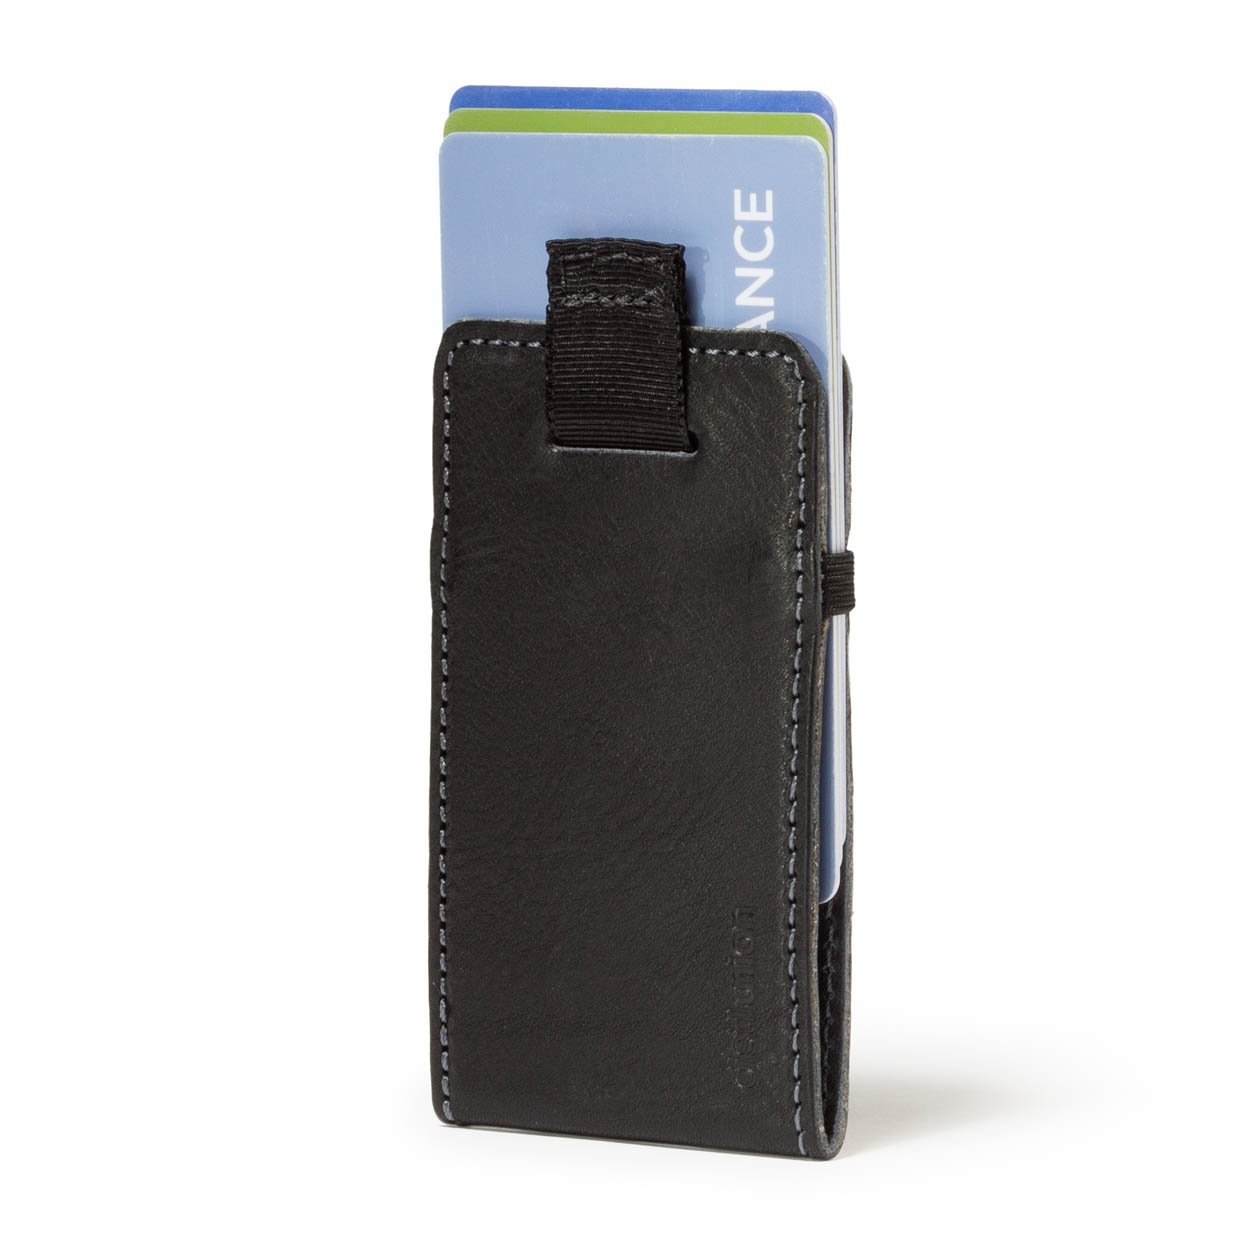 Distil Union Wally Micro - Premium Leather Minimalist Wallet and Card Holder (Black/Gray)